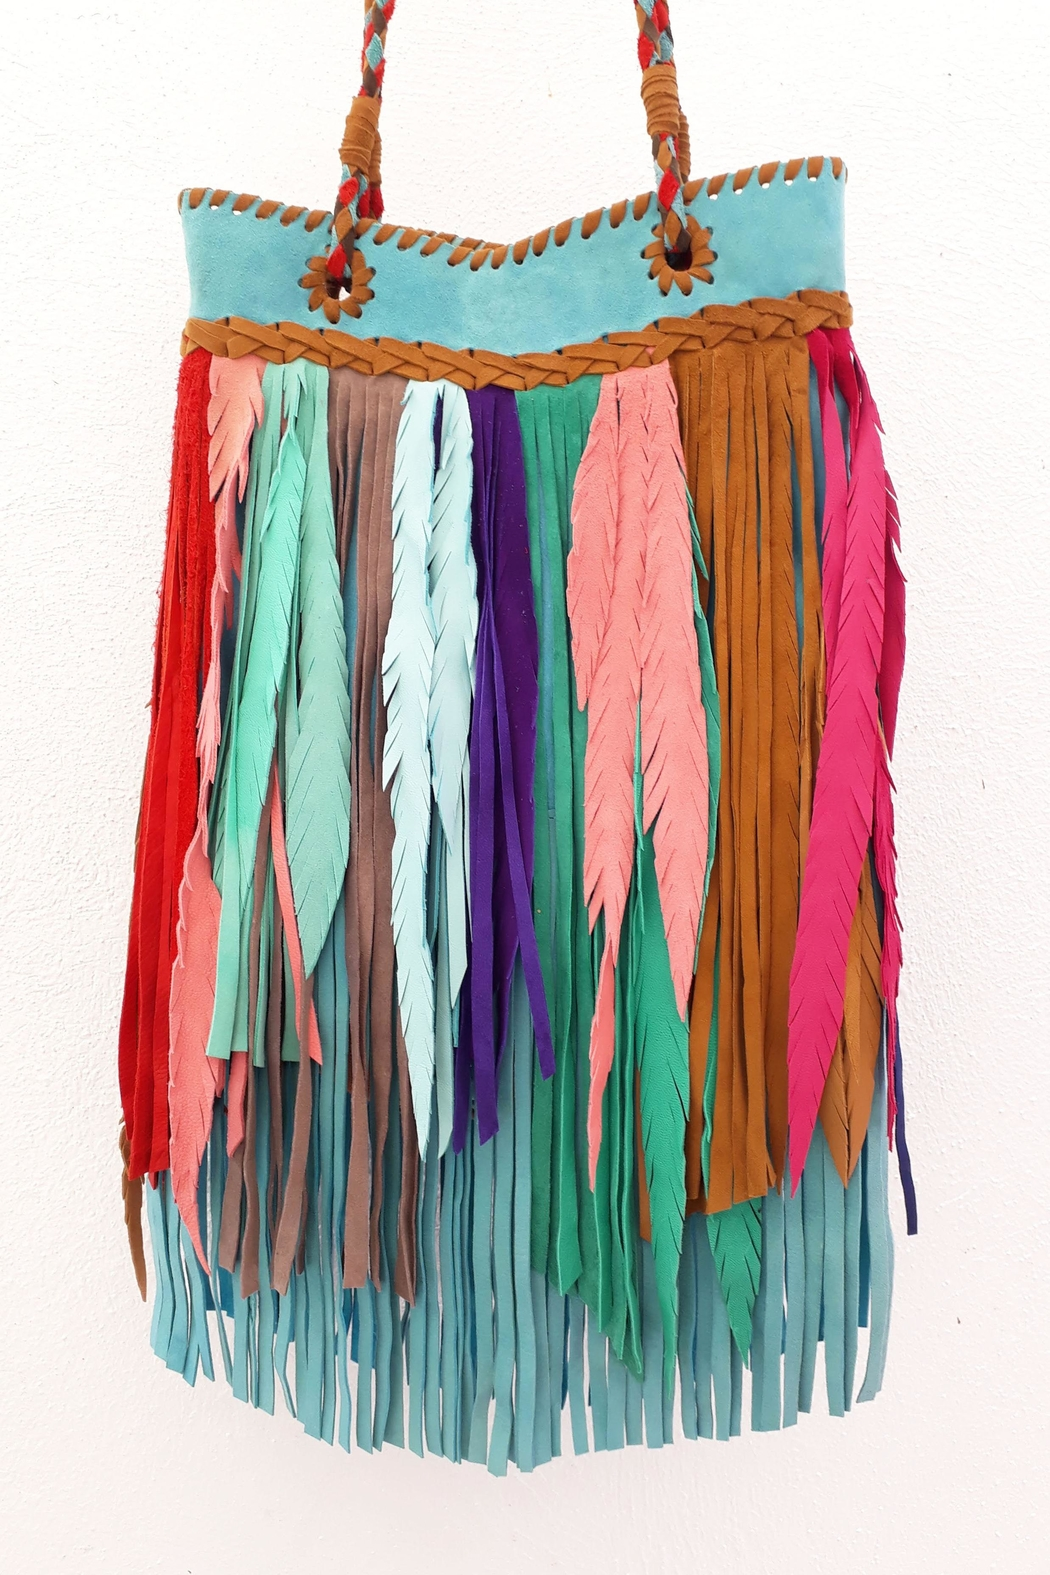 Areias Leather Multicolored Fringes Bag - Front Full Image